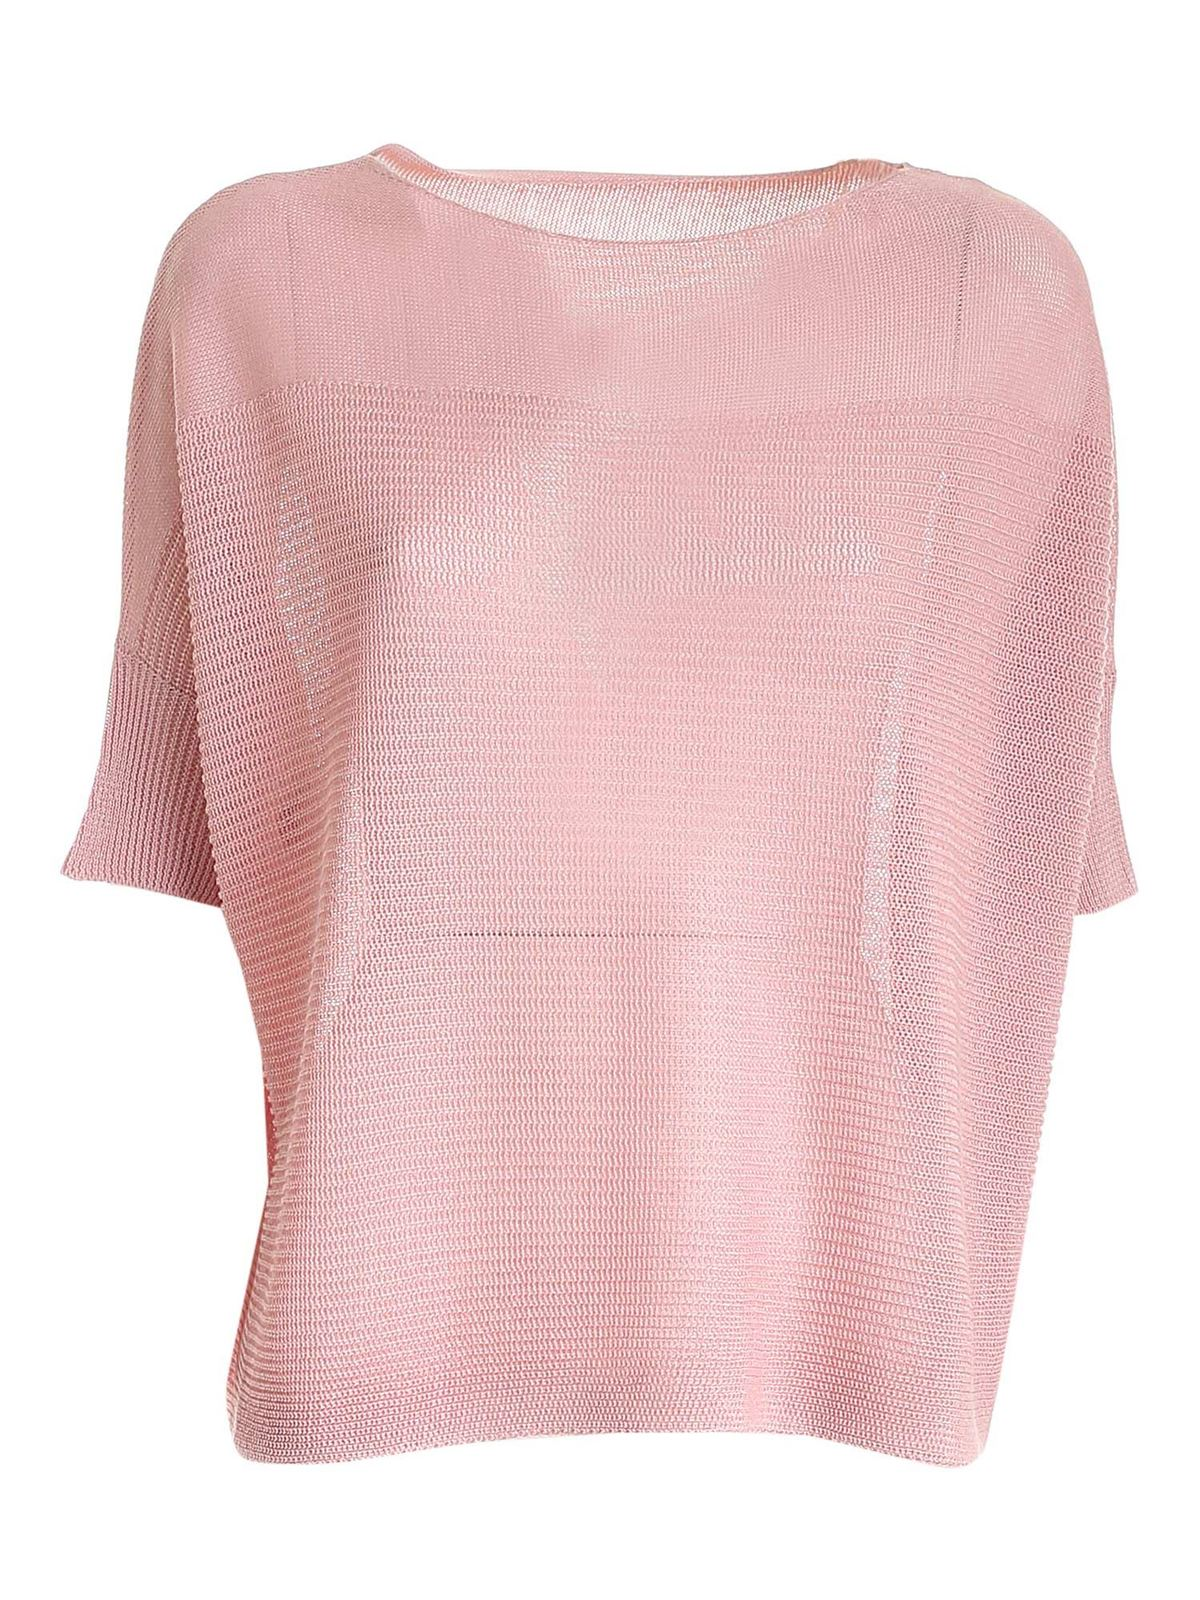 Le Tricot Perugia BOXY SWEATER IN PINK